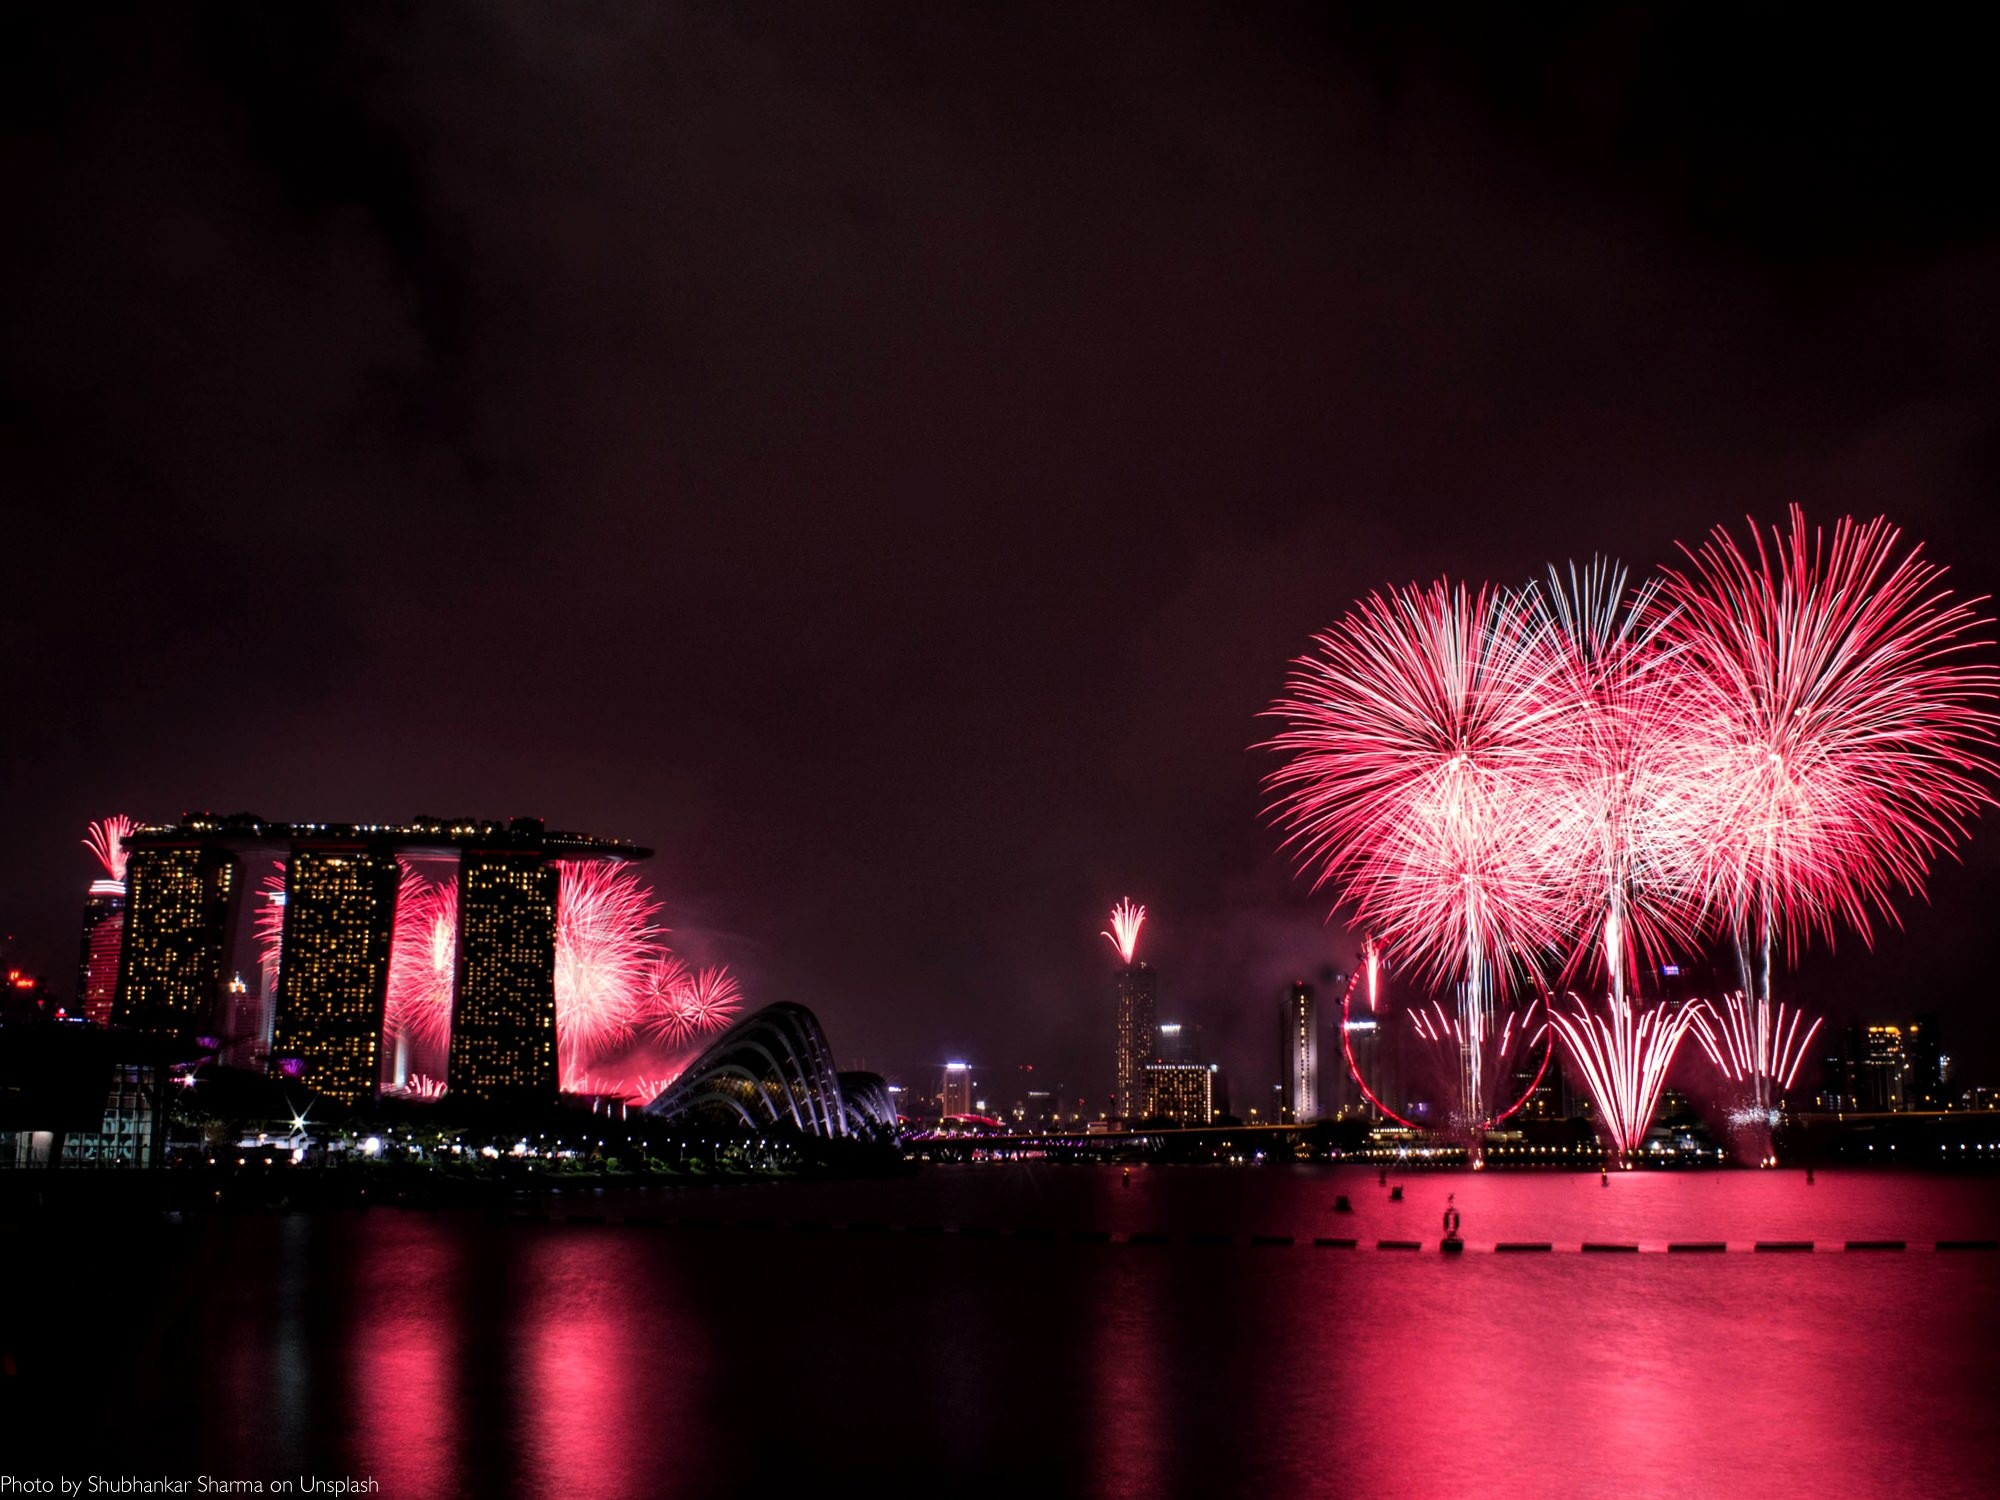 National Day Calendar March Más Recientes Blog 9 Things Singaporean About Red Army Watches Of National Day Calendar March Más Populares asian Festivals Big Holidays and events